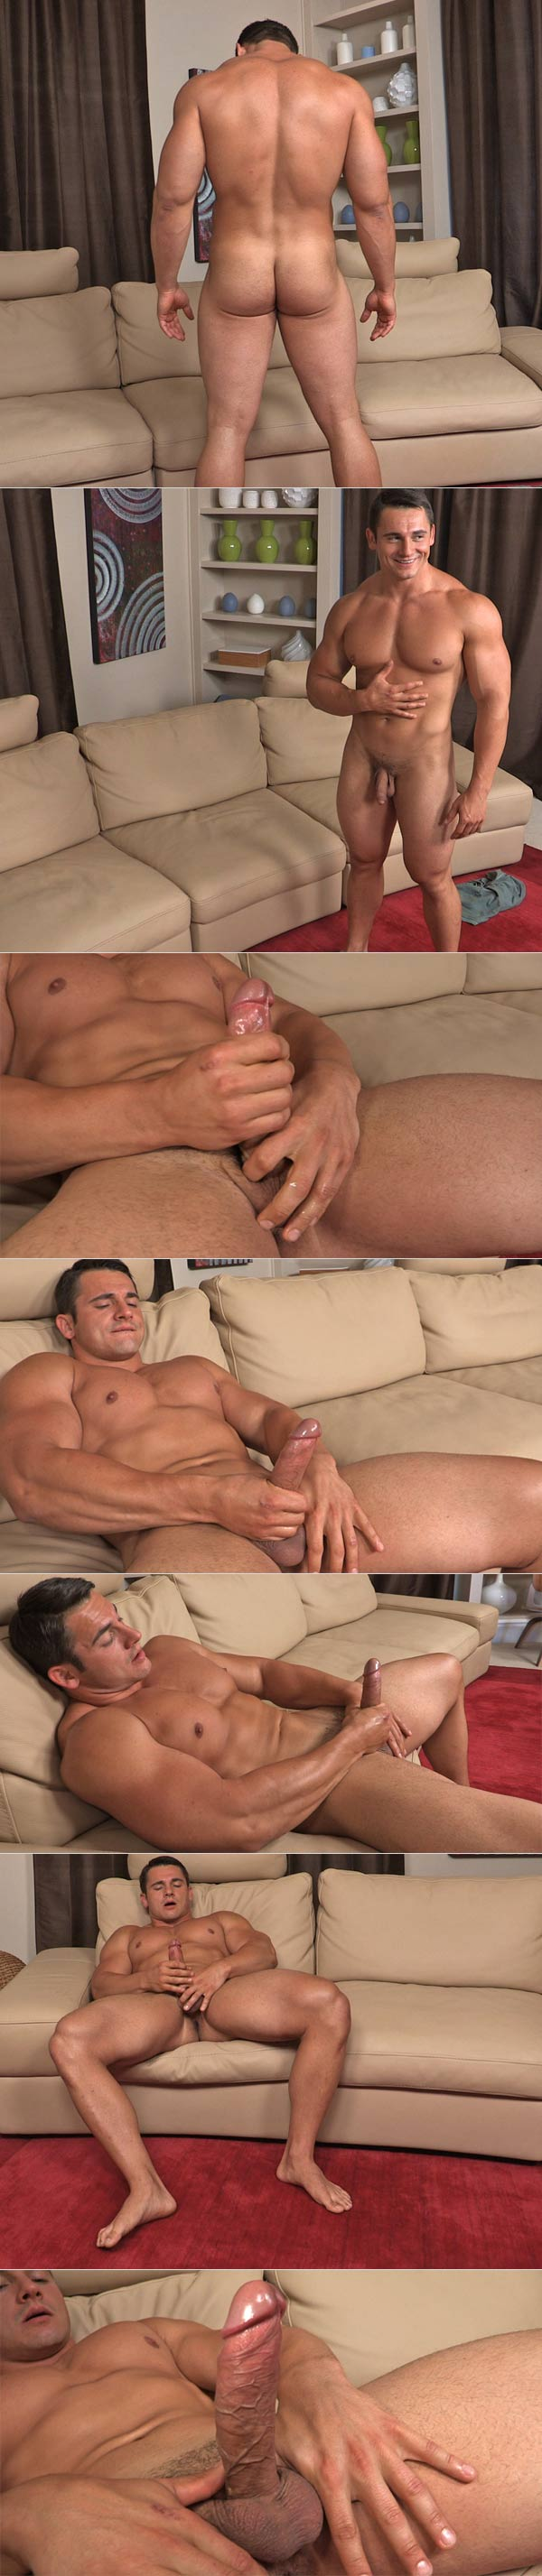 Brock (II) at SeanCody